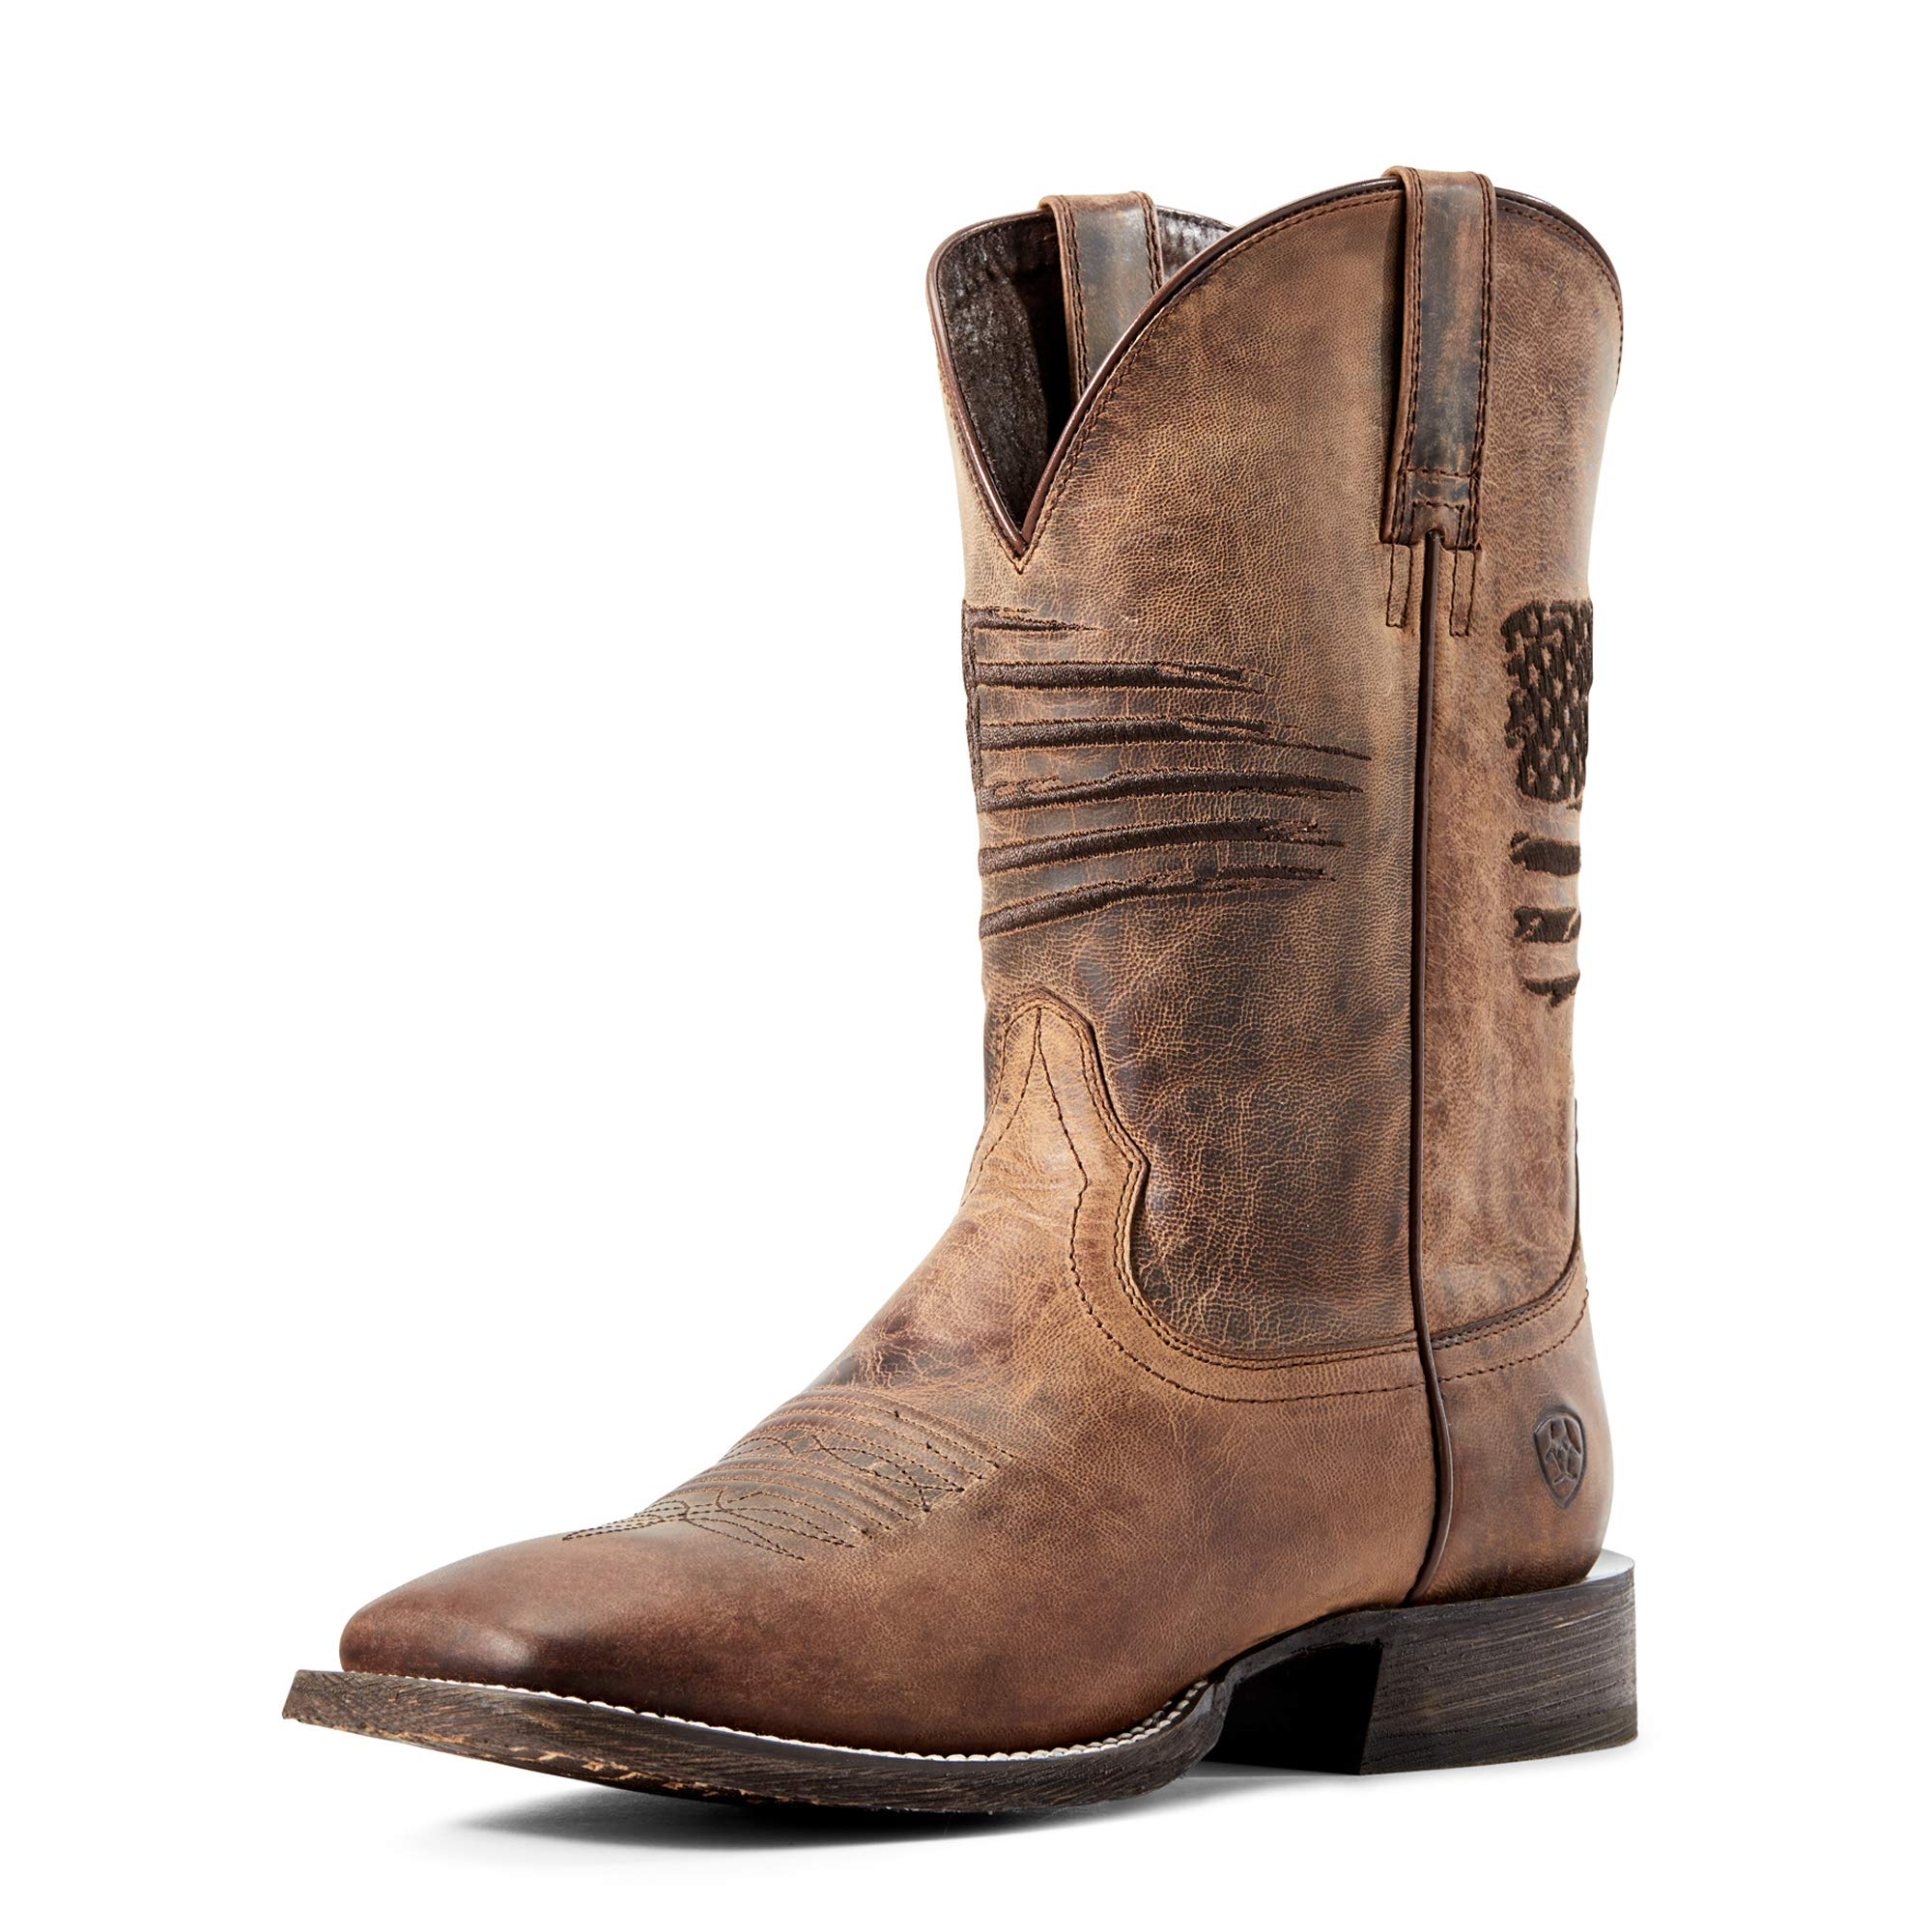 ARIAT Men's Circuit Patriot Western Boot Weathered Tan Size 10 Ee/Wide Us by ARIAT